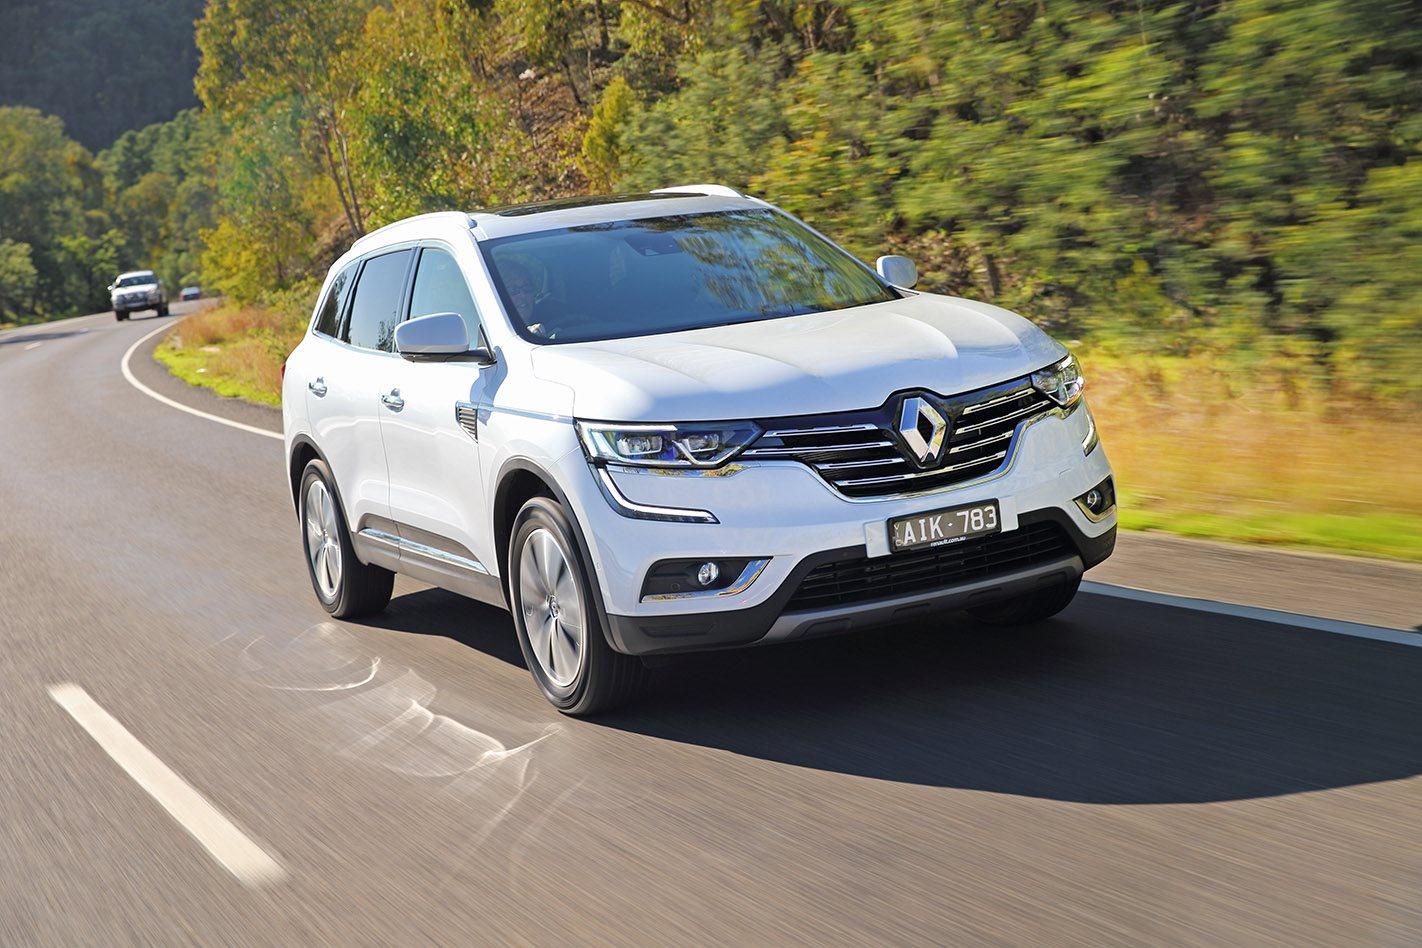 Renault Koleos 2018 Review, Price & Features